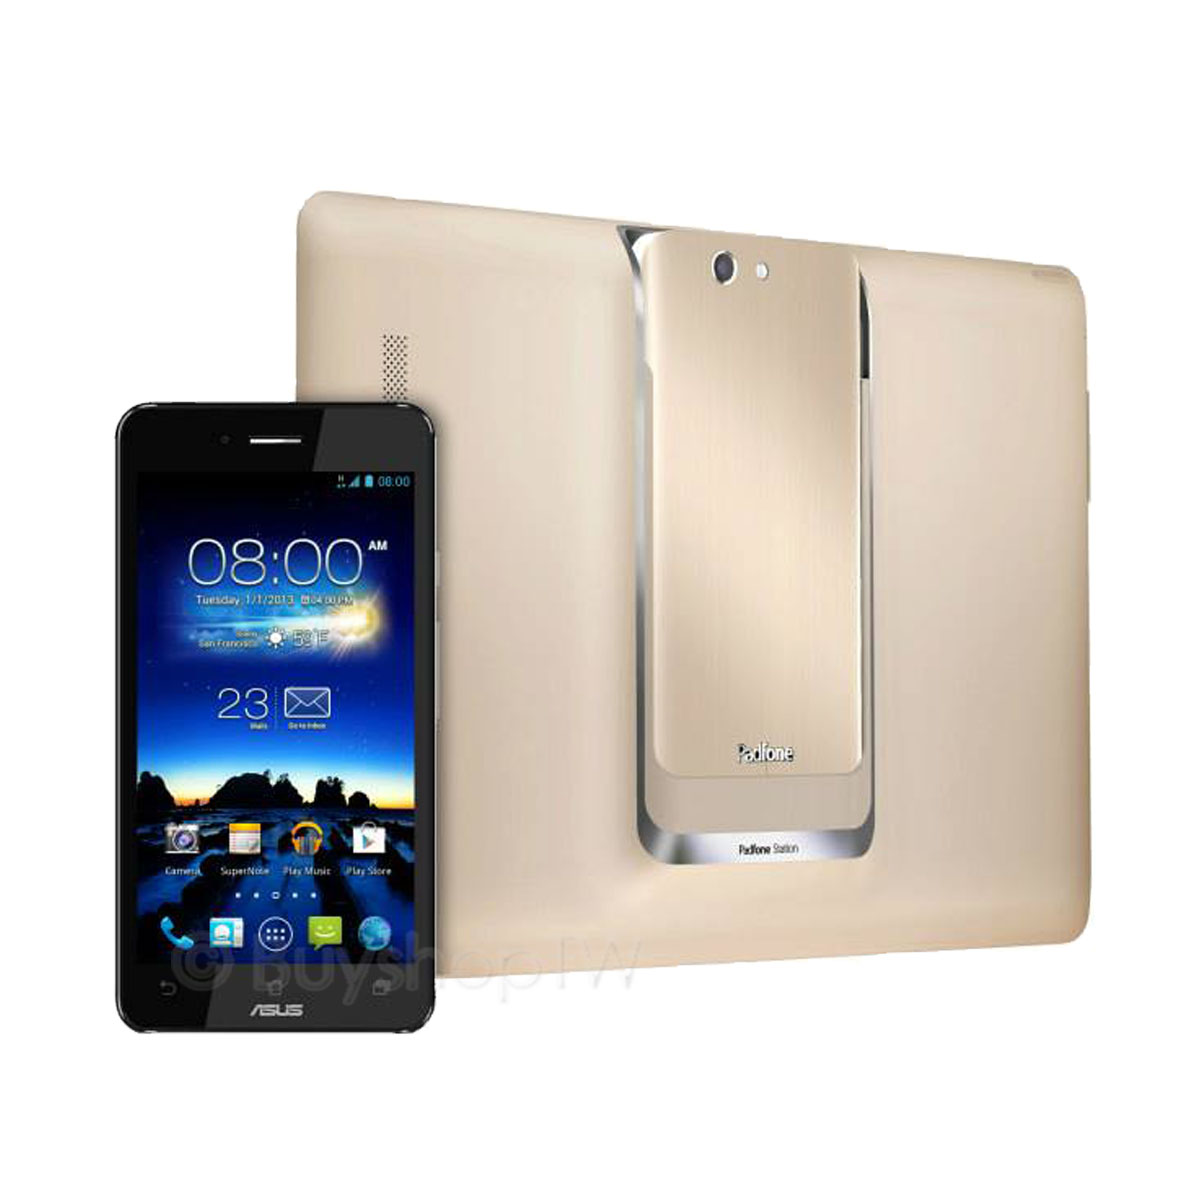 Asus Padfone Infinity A80 T003 Gold 64gb With Dock Price In Pakistan Samsung Galaxy Infinite 4 Inch Display Android 41 Jellybean Dual Core 12 Ghz Processor 5 Phone Unlocked Pad 101 Champagne